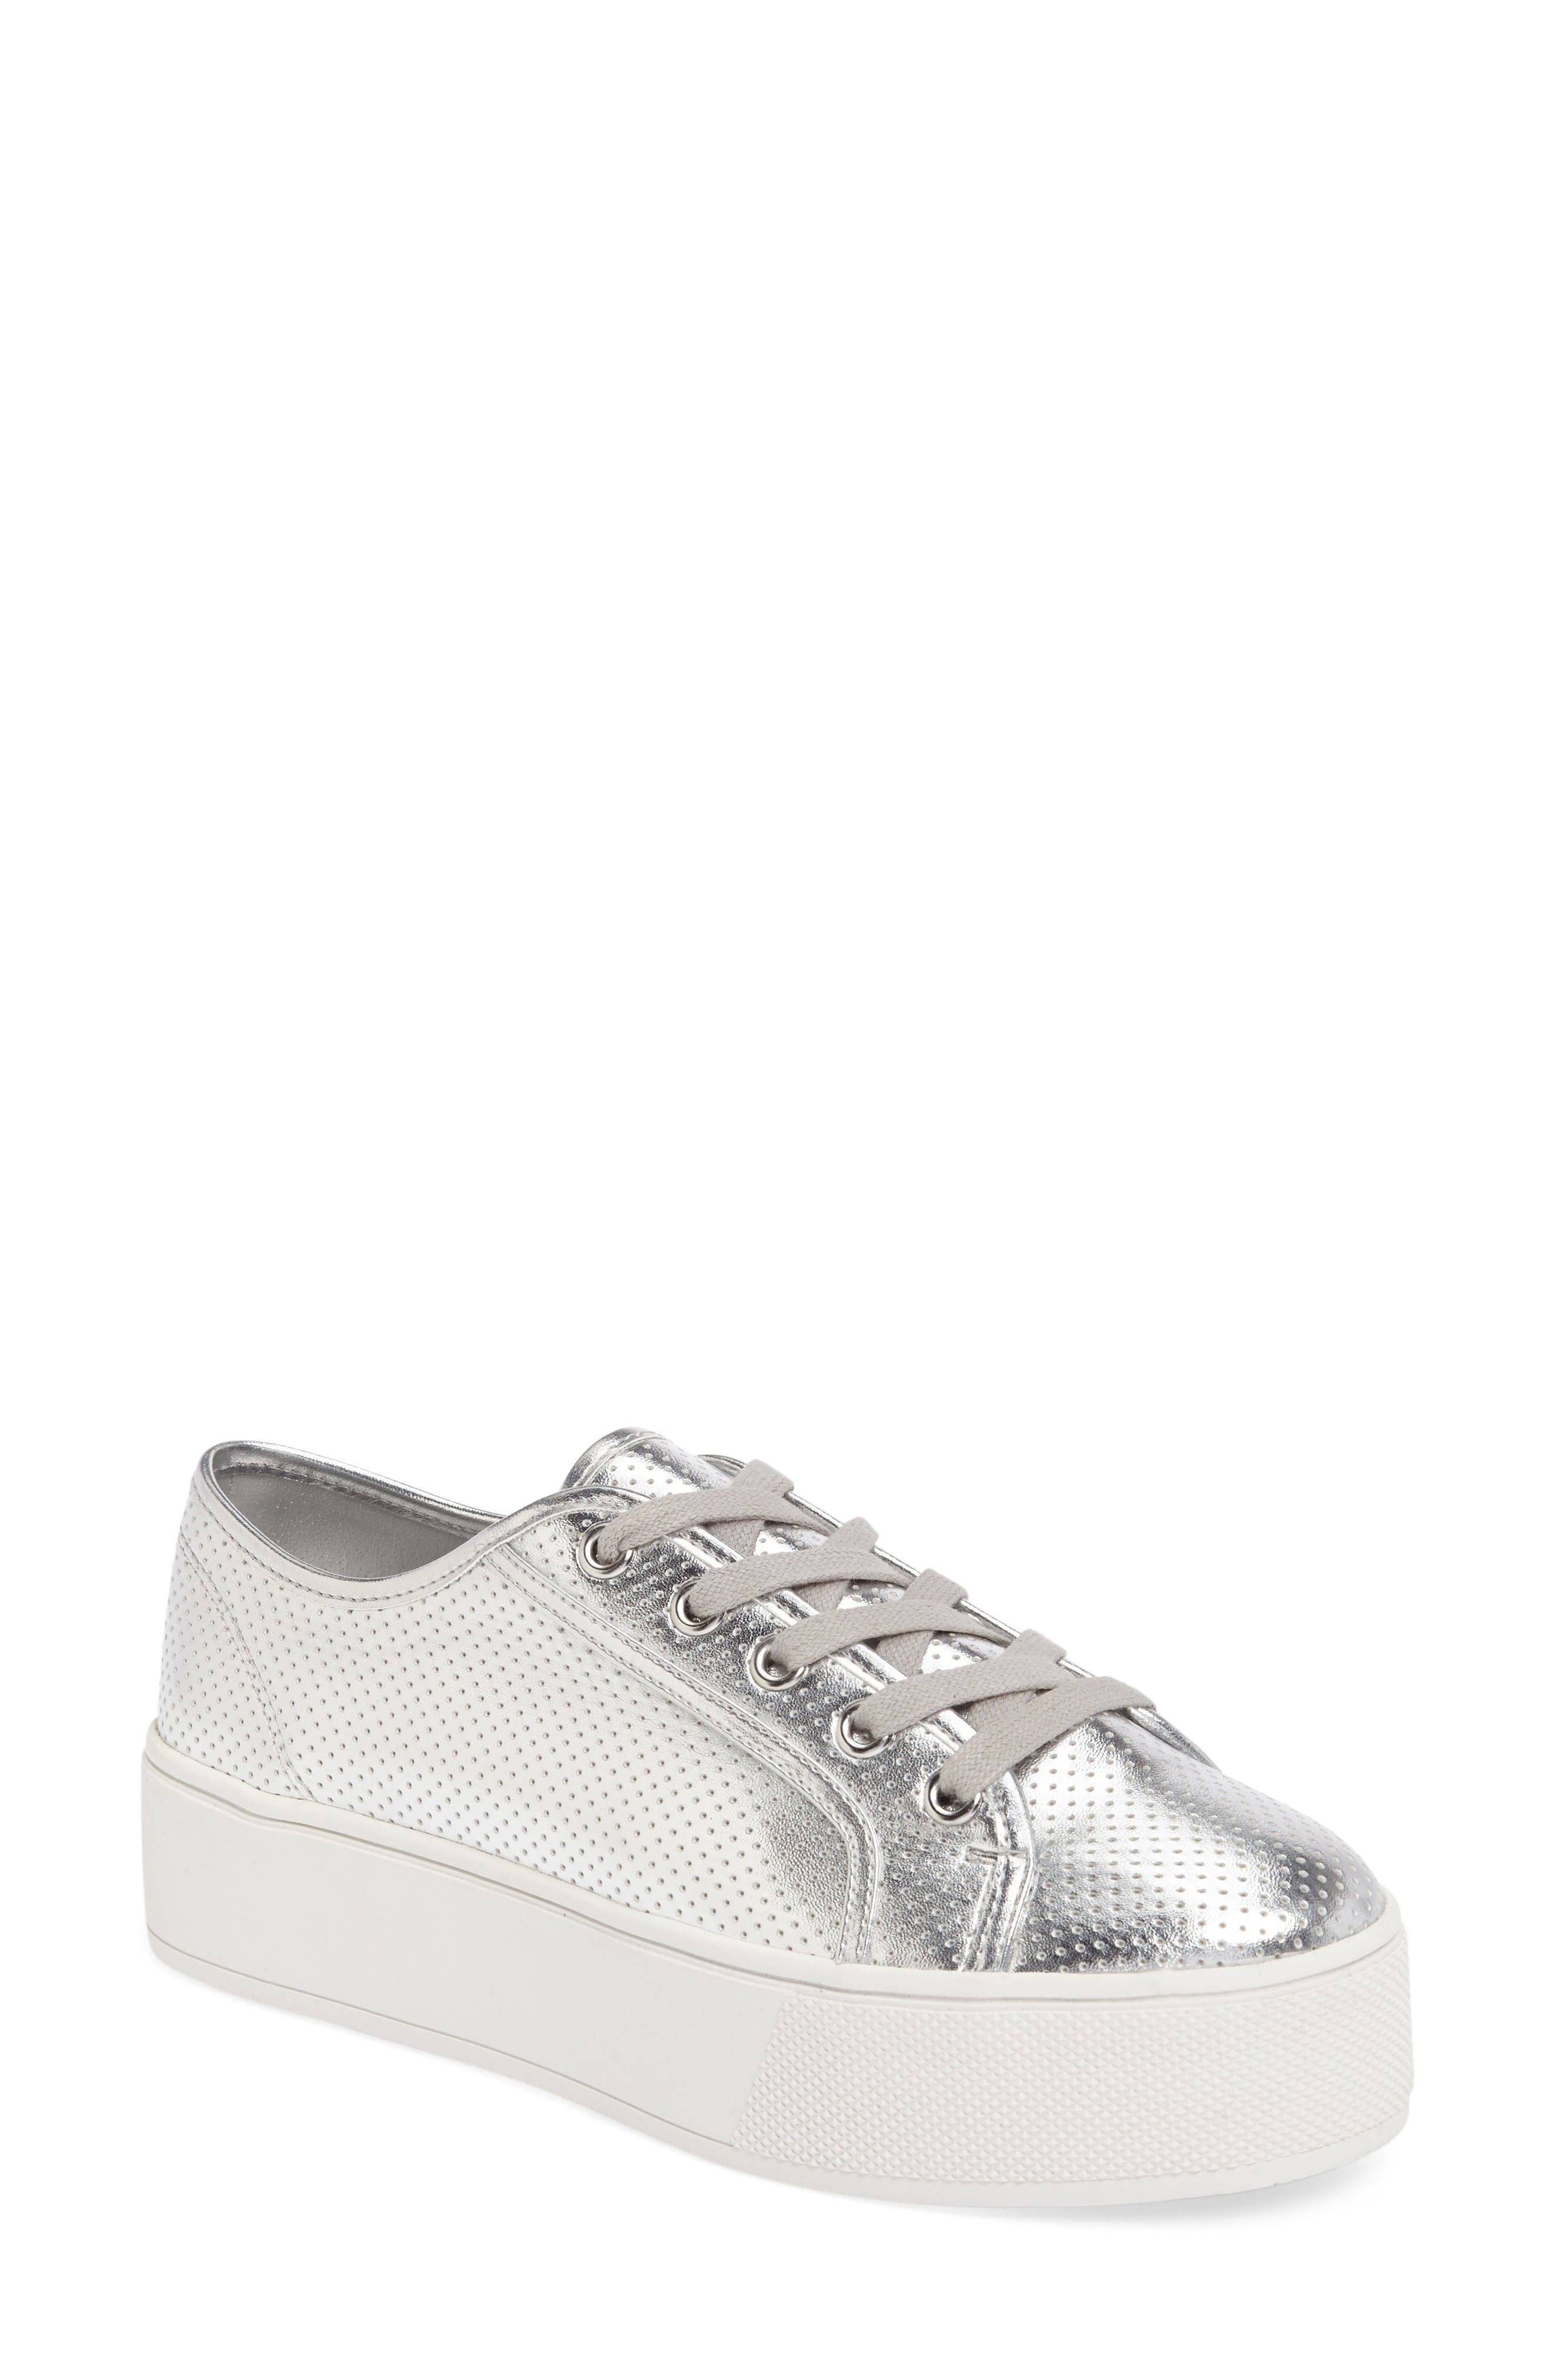 Steve Madden Future Perforated Platform Sneaker (Women)